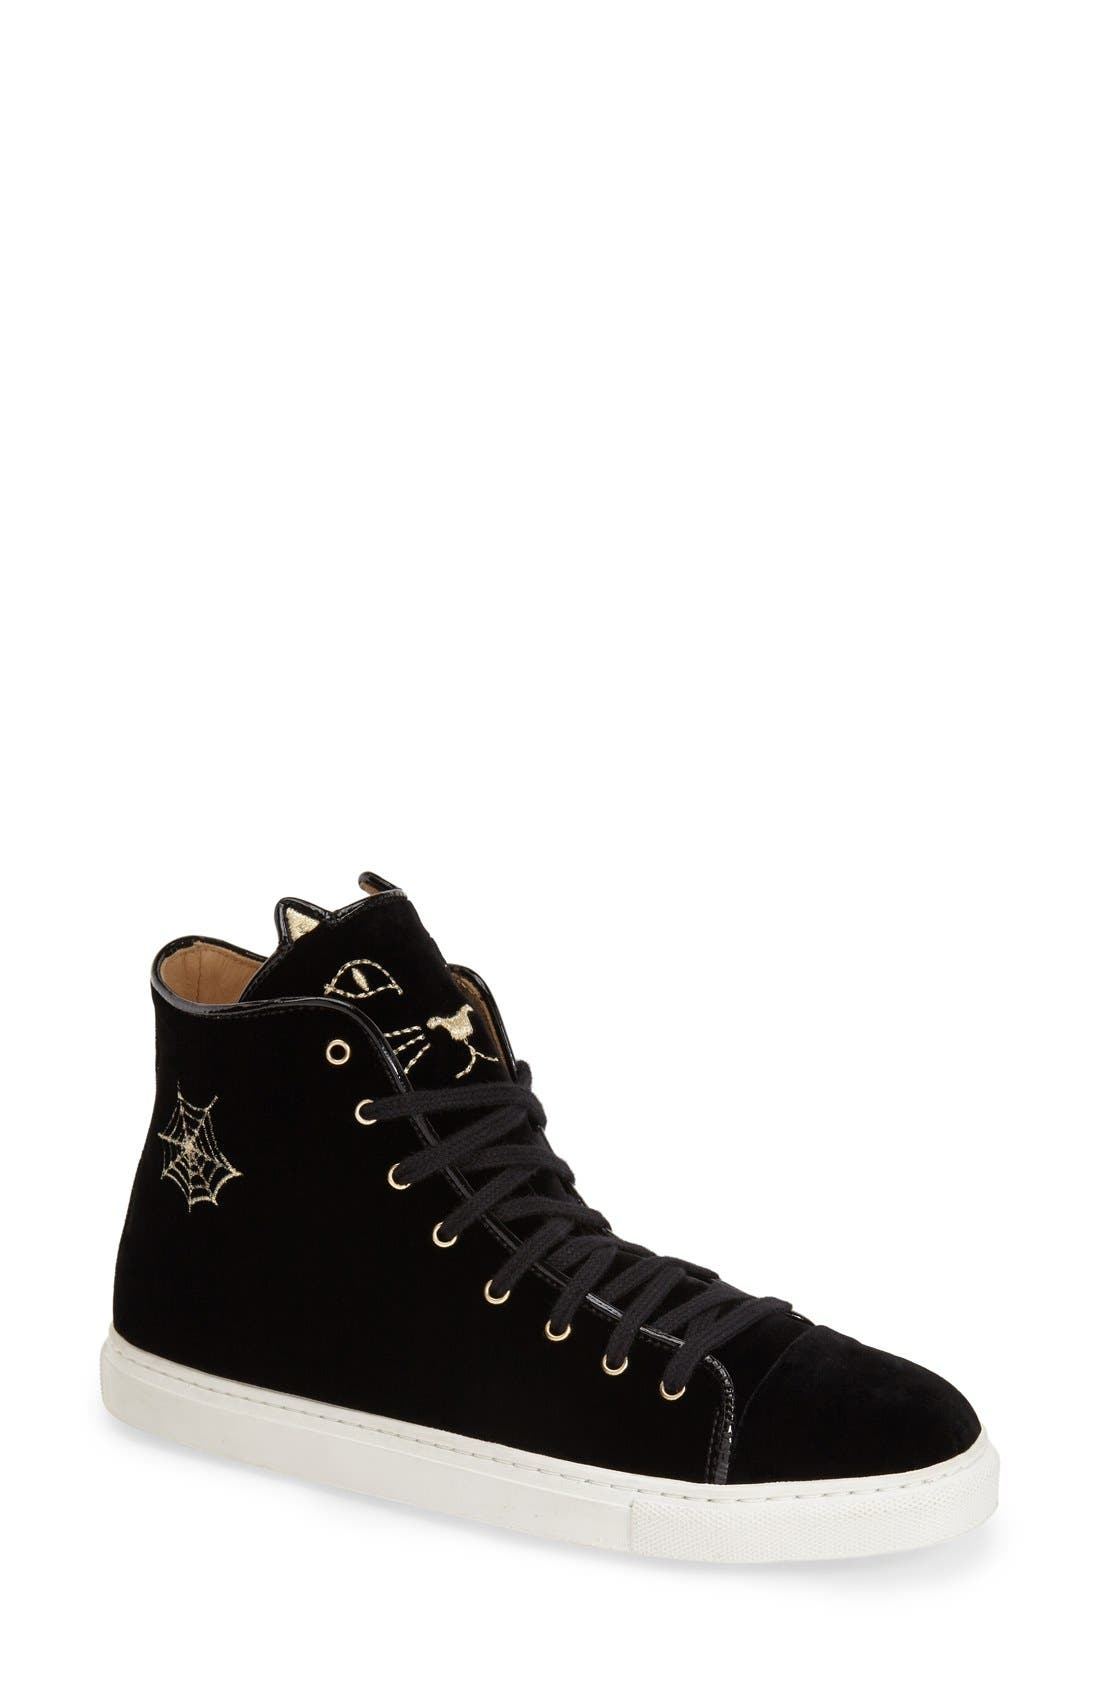 Main Image - Charlotte Olympia 'Purrrfect' High Top Sneaker (Women)